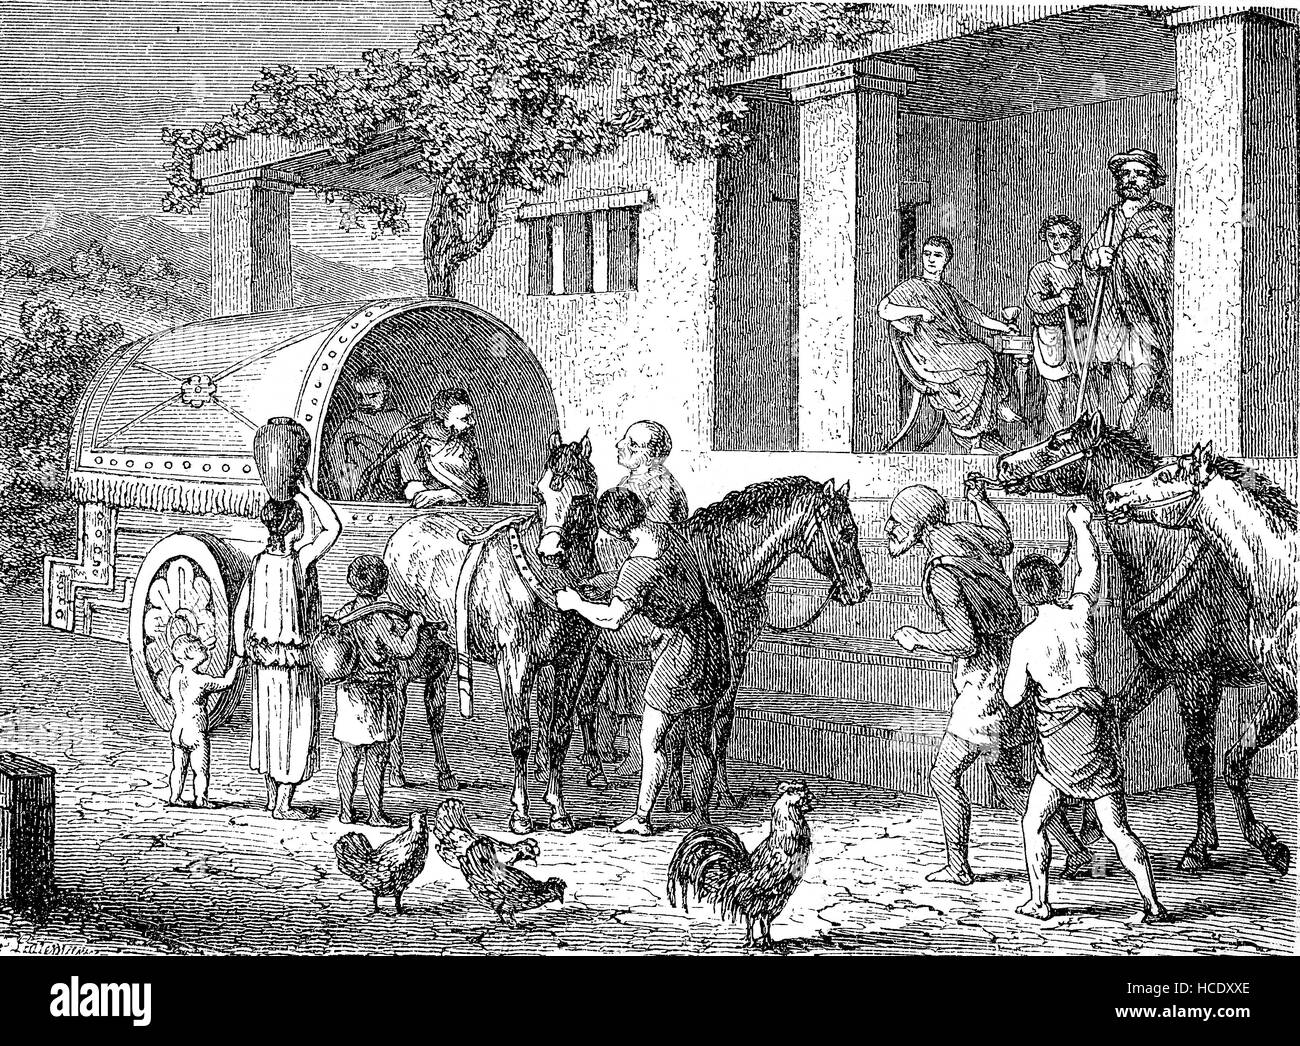 Roman postal coach, 400 AD, the story of the ancient Rome, roman Empire, Italy - Stock Image